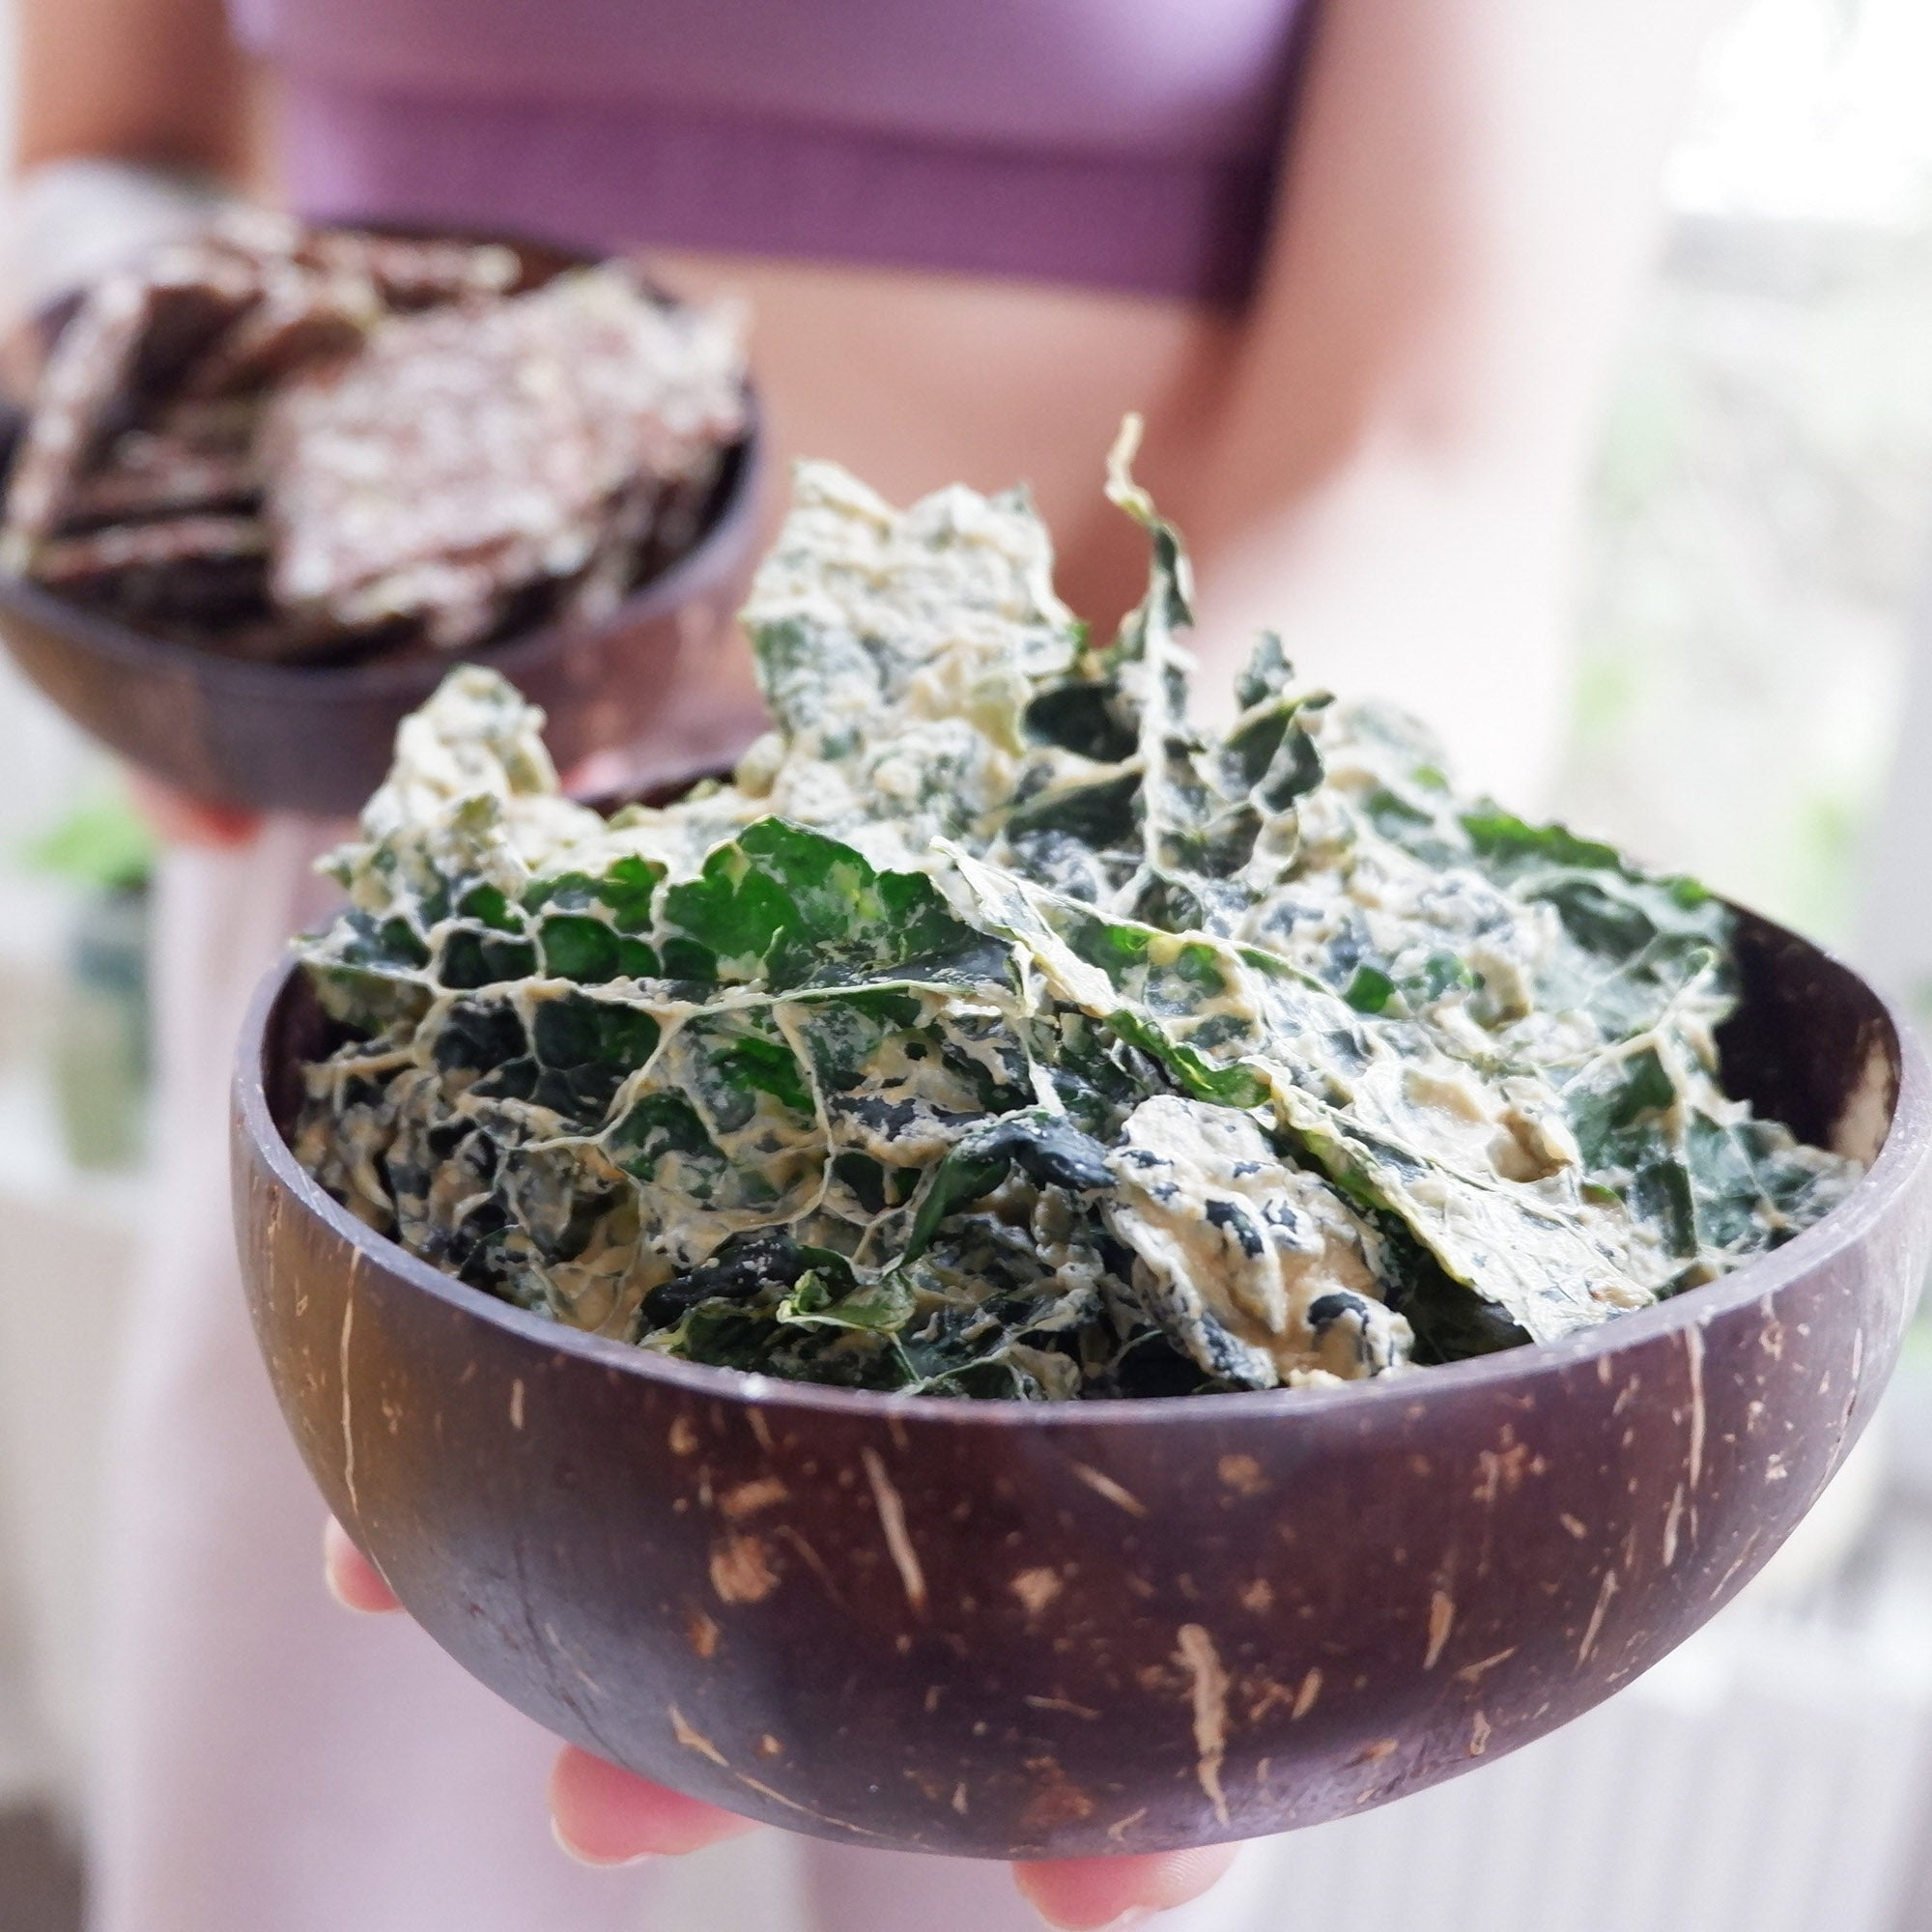 Crunchy Kale Chips with Spicy Cashew Sauce